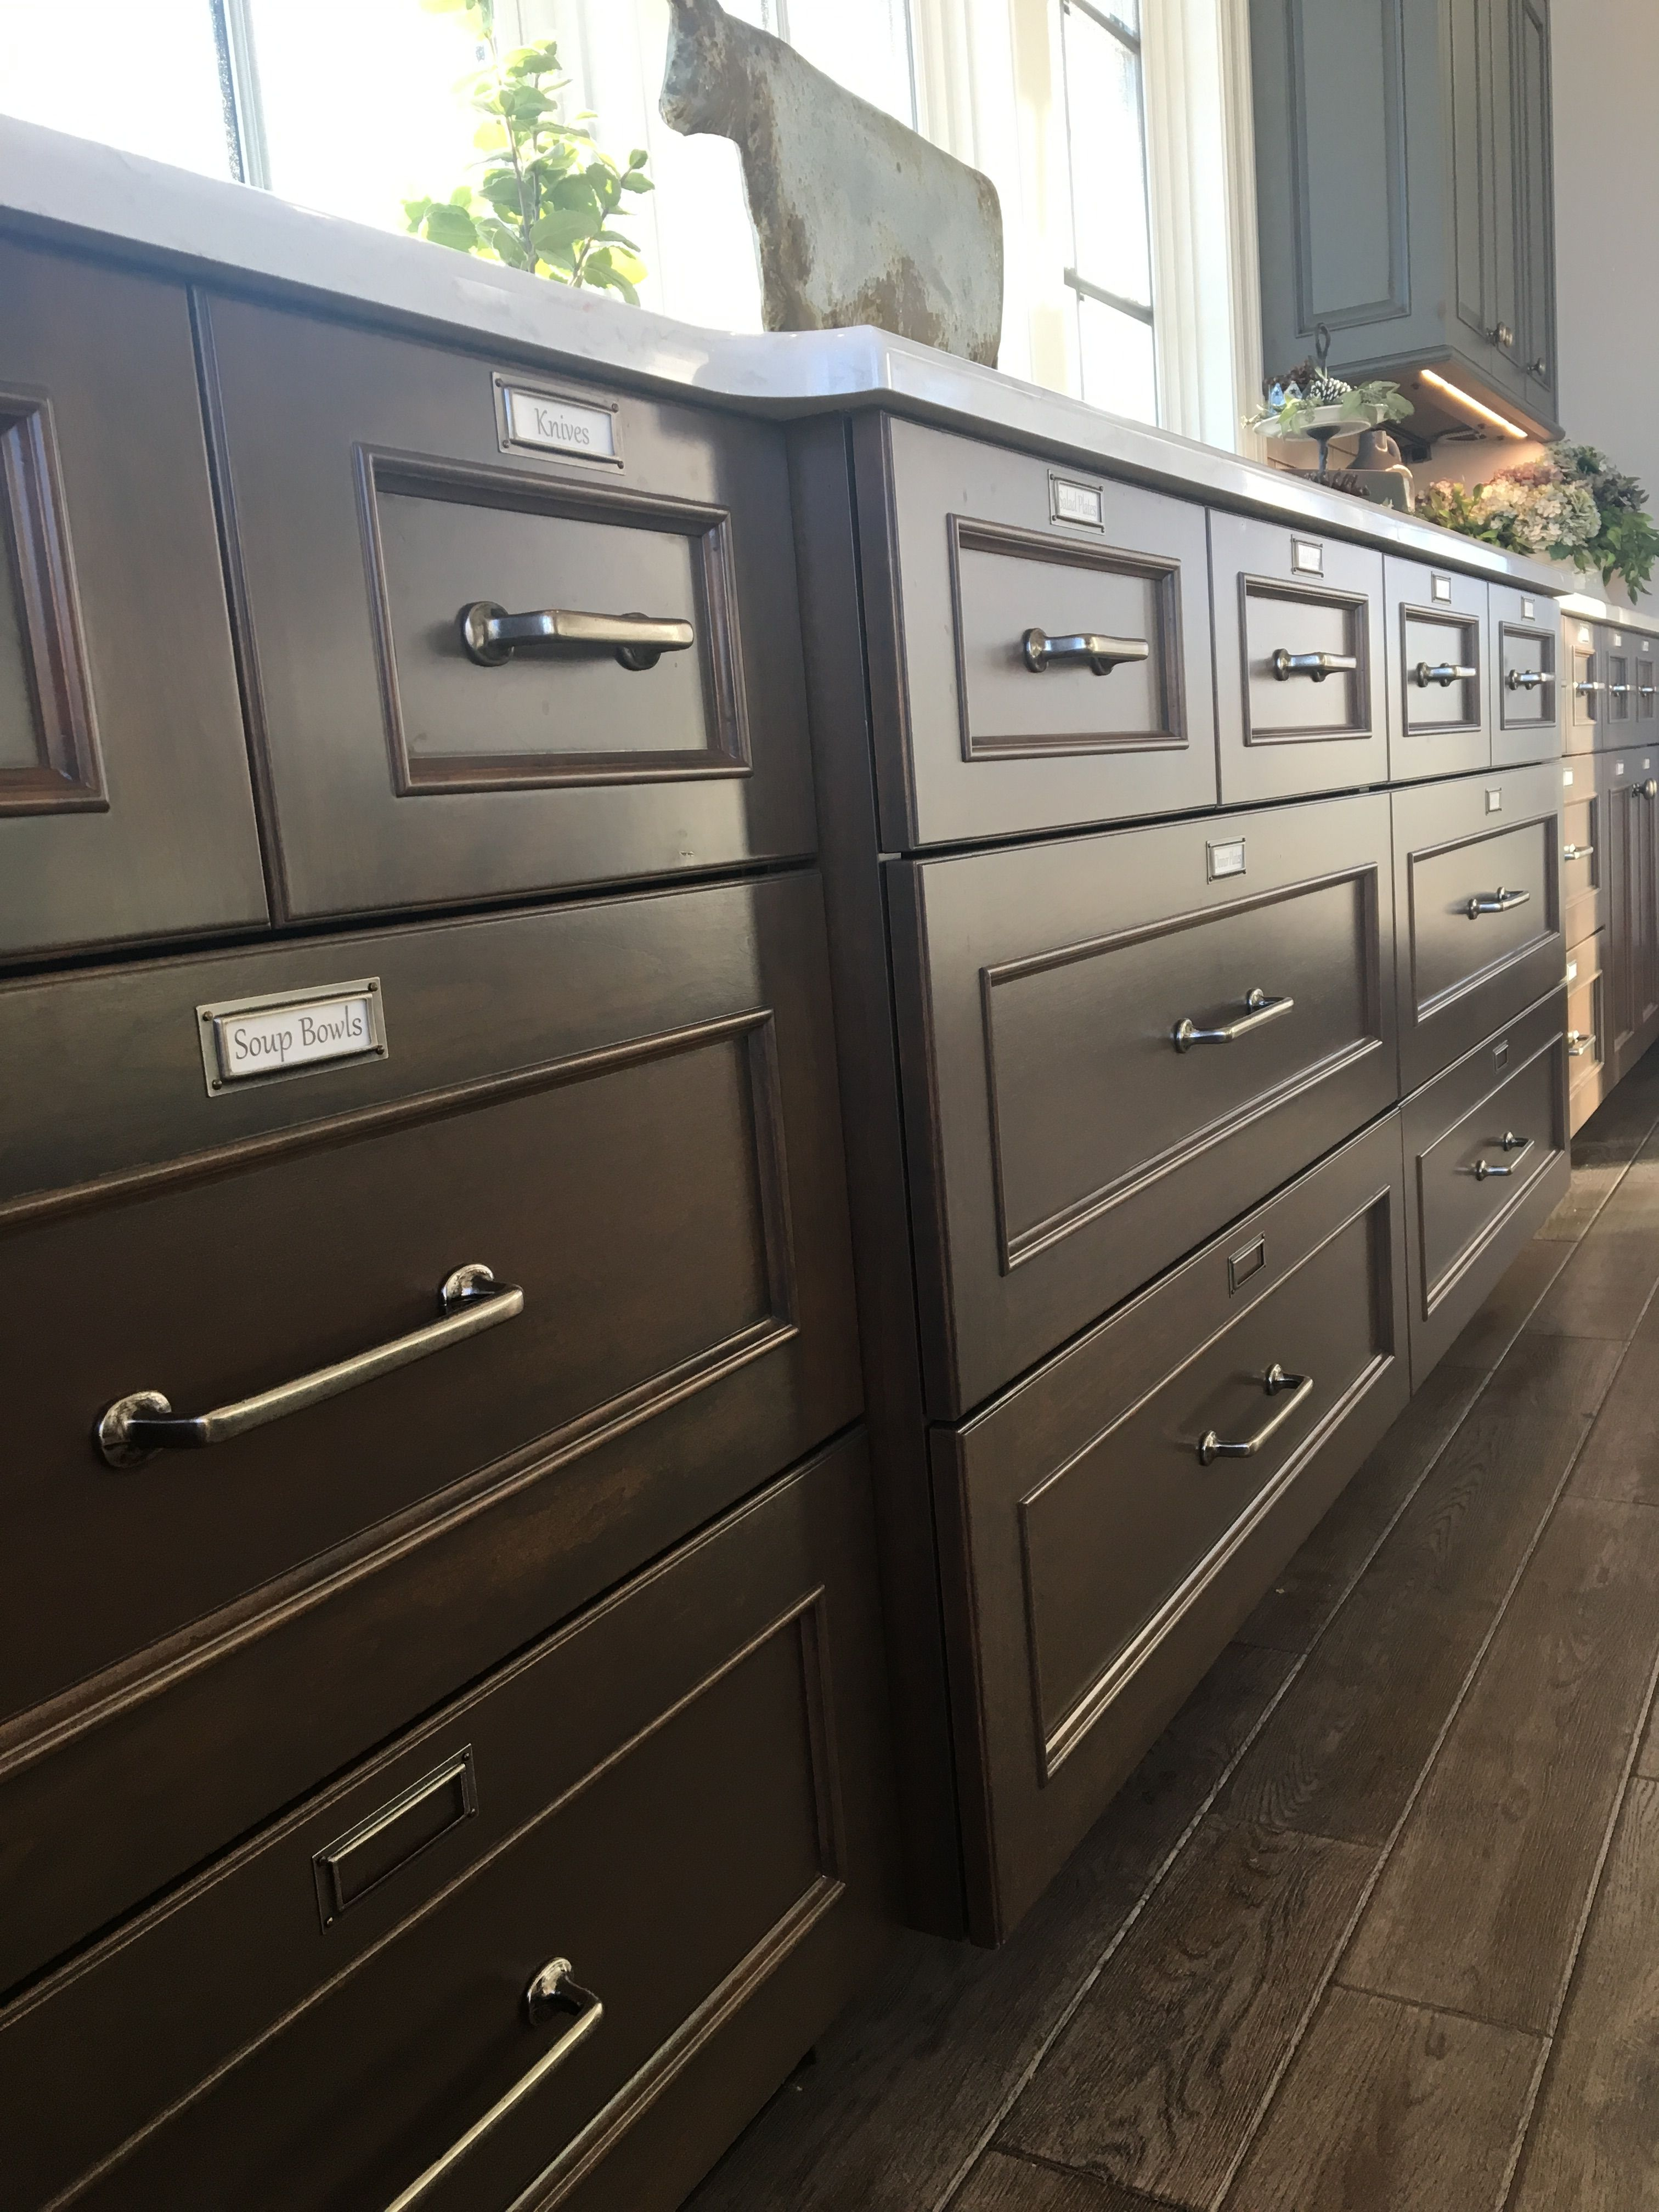 Cabinets With Labels Bathrooms Remodel Antique Dresser Home Decor